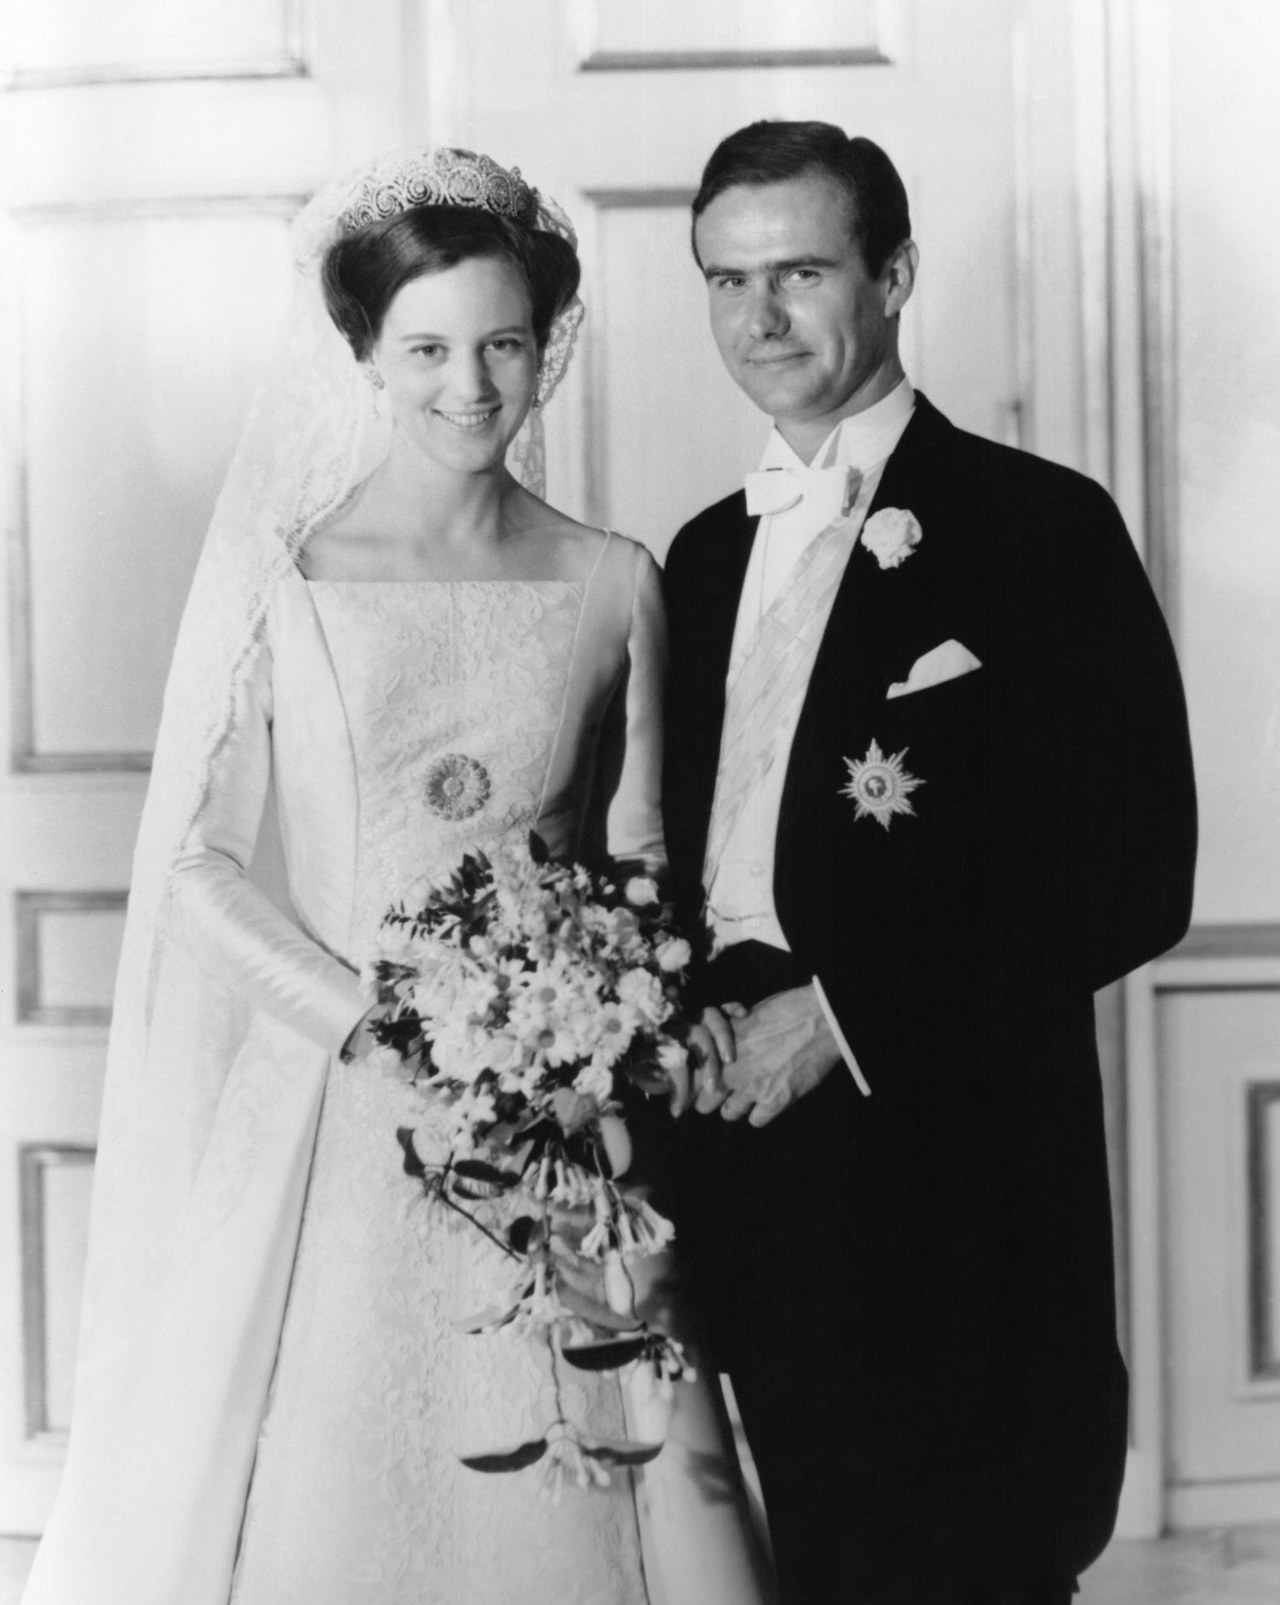 πριγκίπισσα Margrethe denmark wedding picture